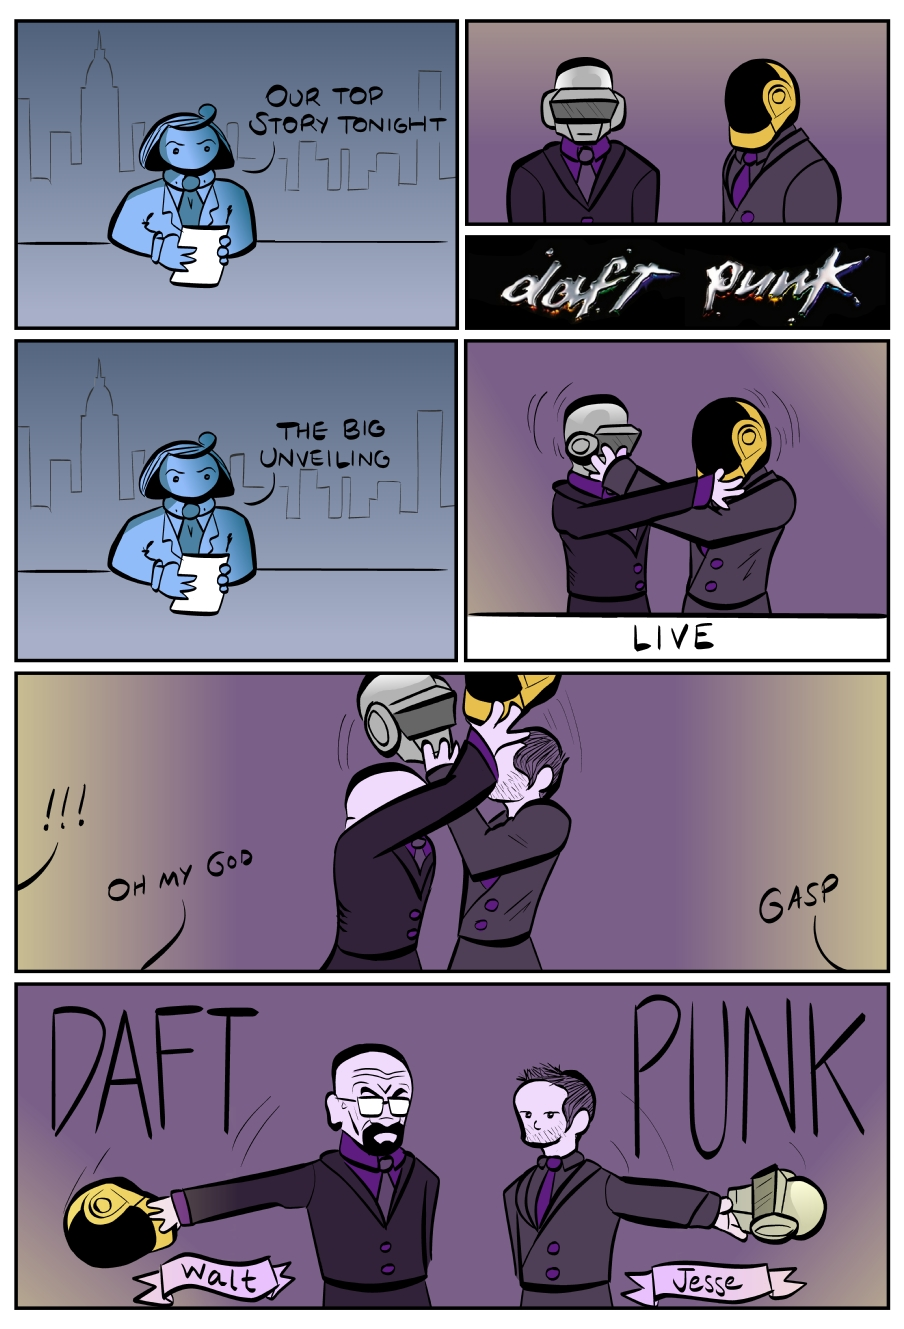 the daftest punk of all --- friendship